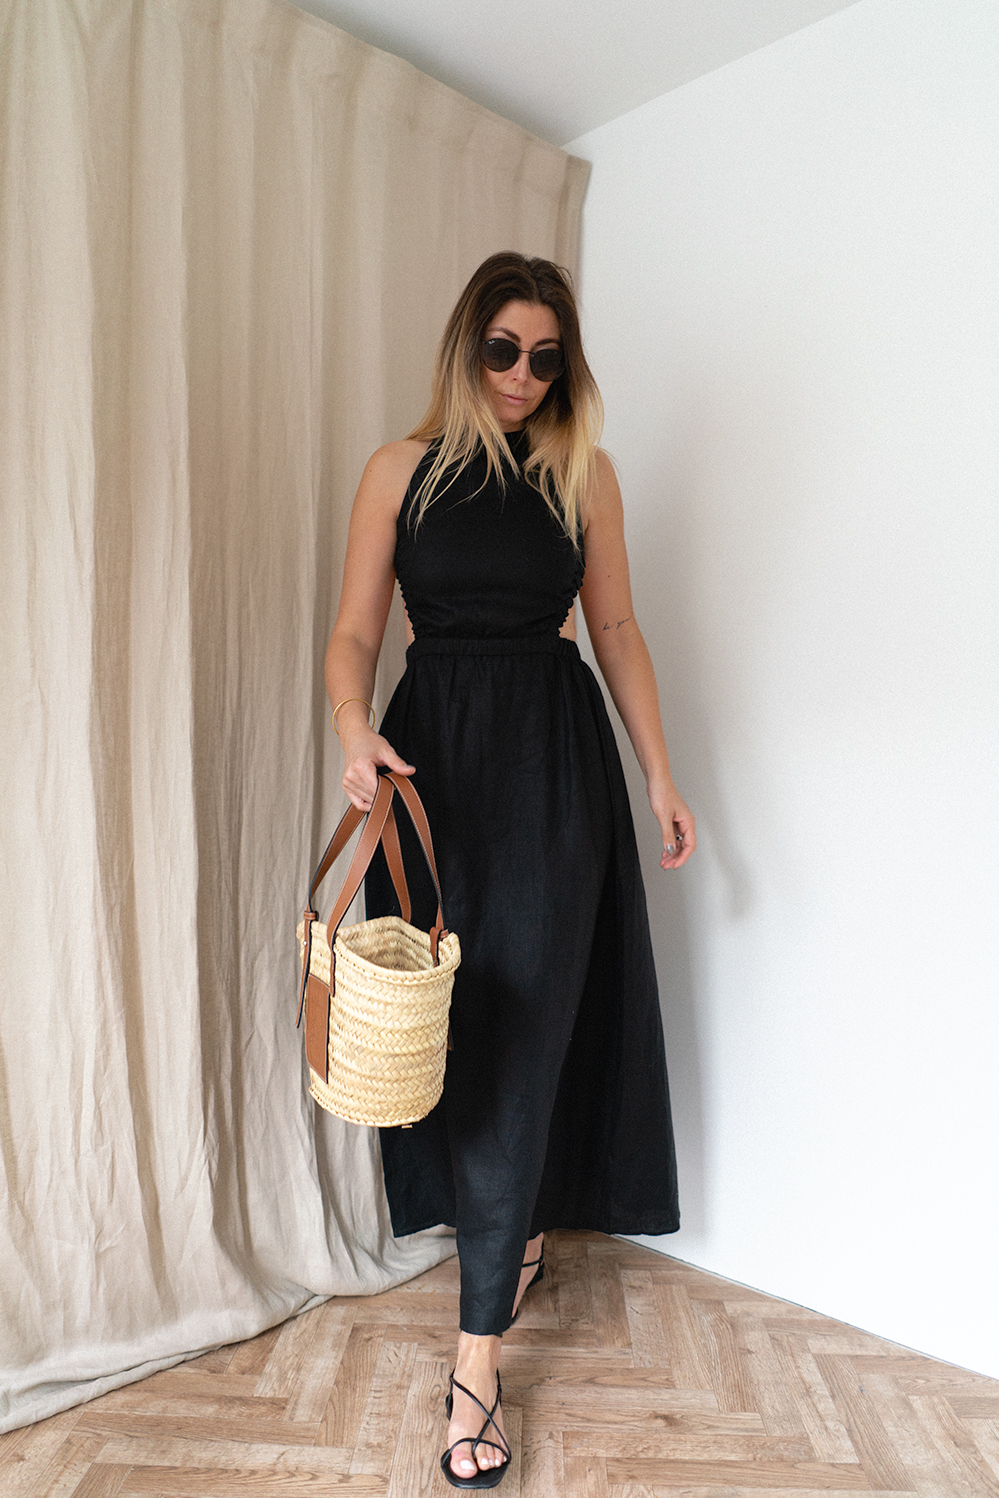 Emma Hill wears black linen backless dress by Sir the label. Loewe basket bag. Black strappy barely there sandals. Chic Summer outfit